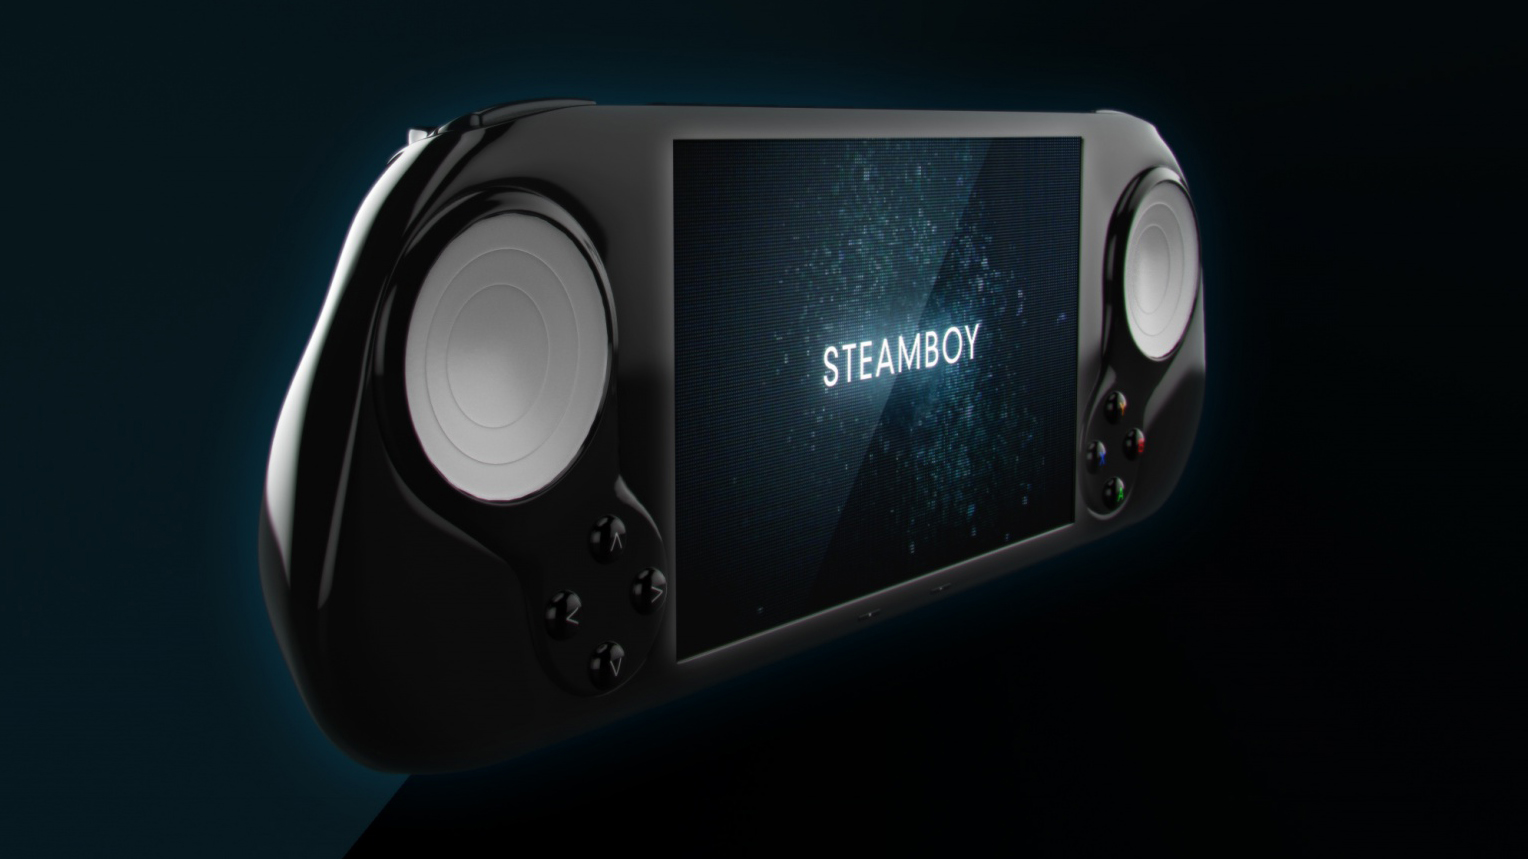 <p><strong>Steamboy.</strong> ����������� ������� �� Valve �������� ����������� PS Vita. ��������� ������� ������� ����� �������� �� ���������� ���������� intel � ���� ����������� ������ � ���� ��������� Steam � ����� ������� �����.</p>